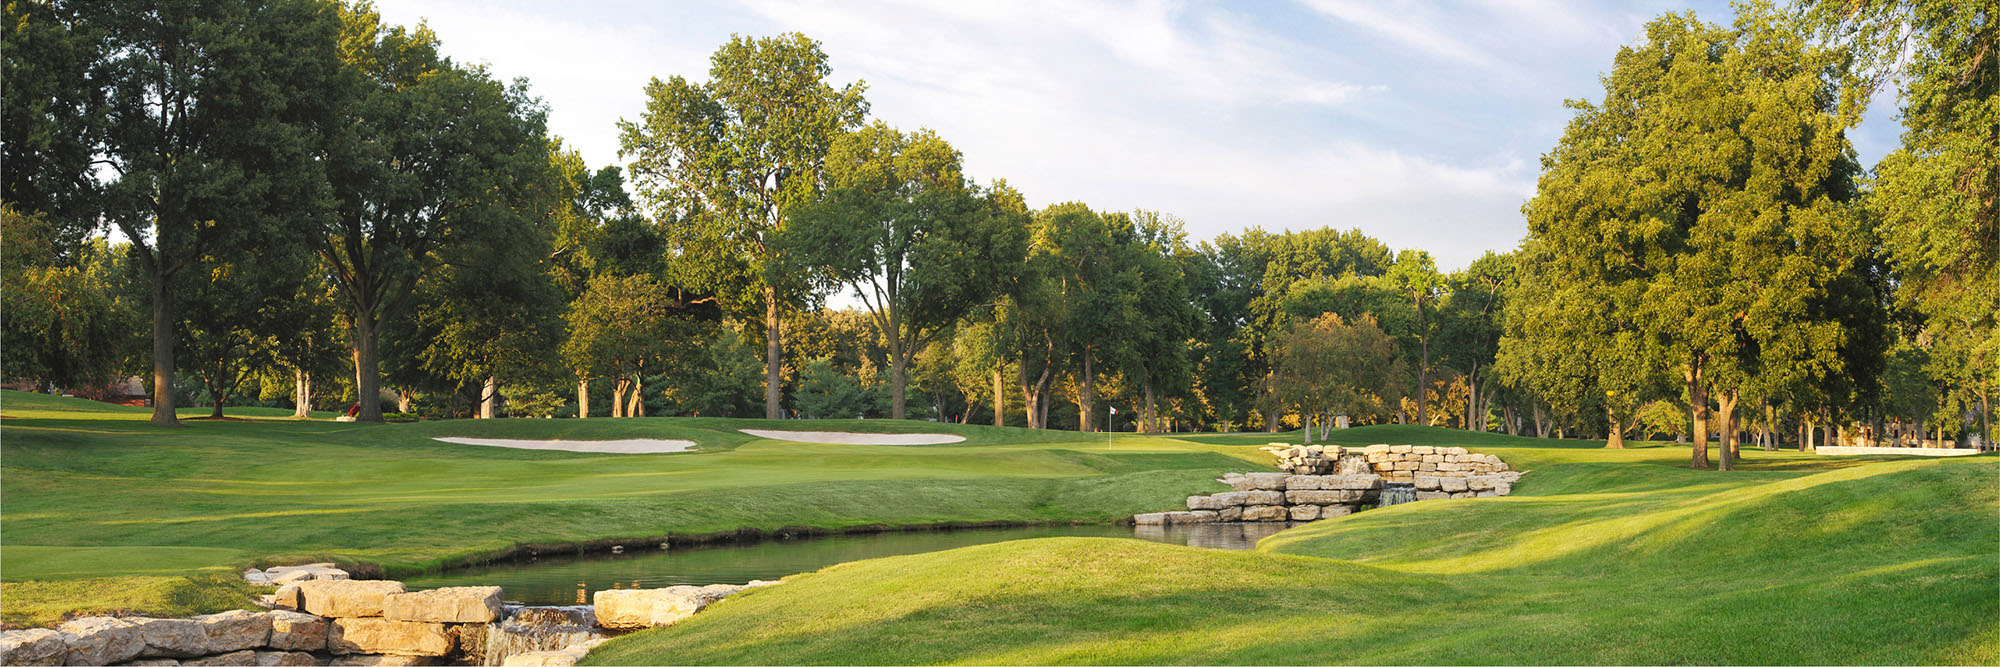 Golf Course Image - Indian Hills No. 7